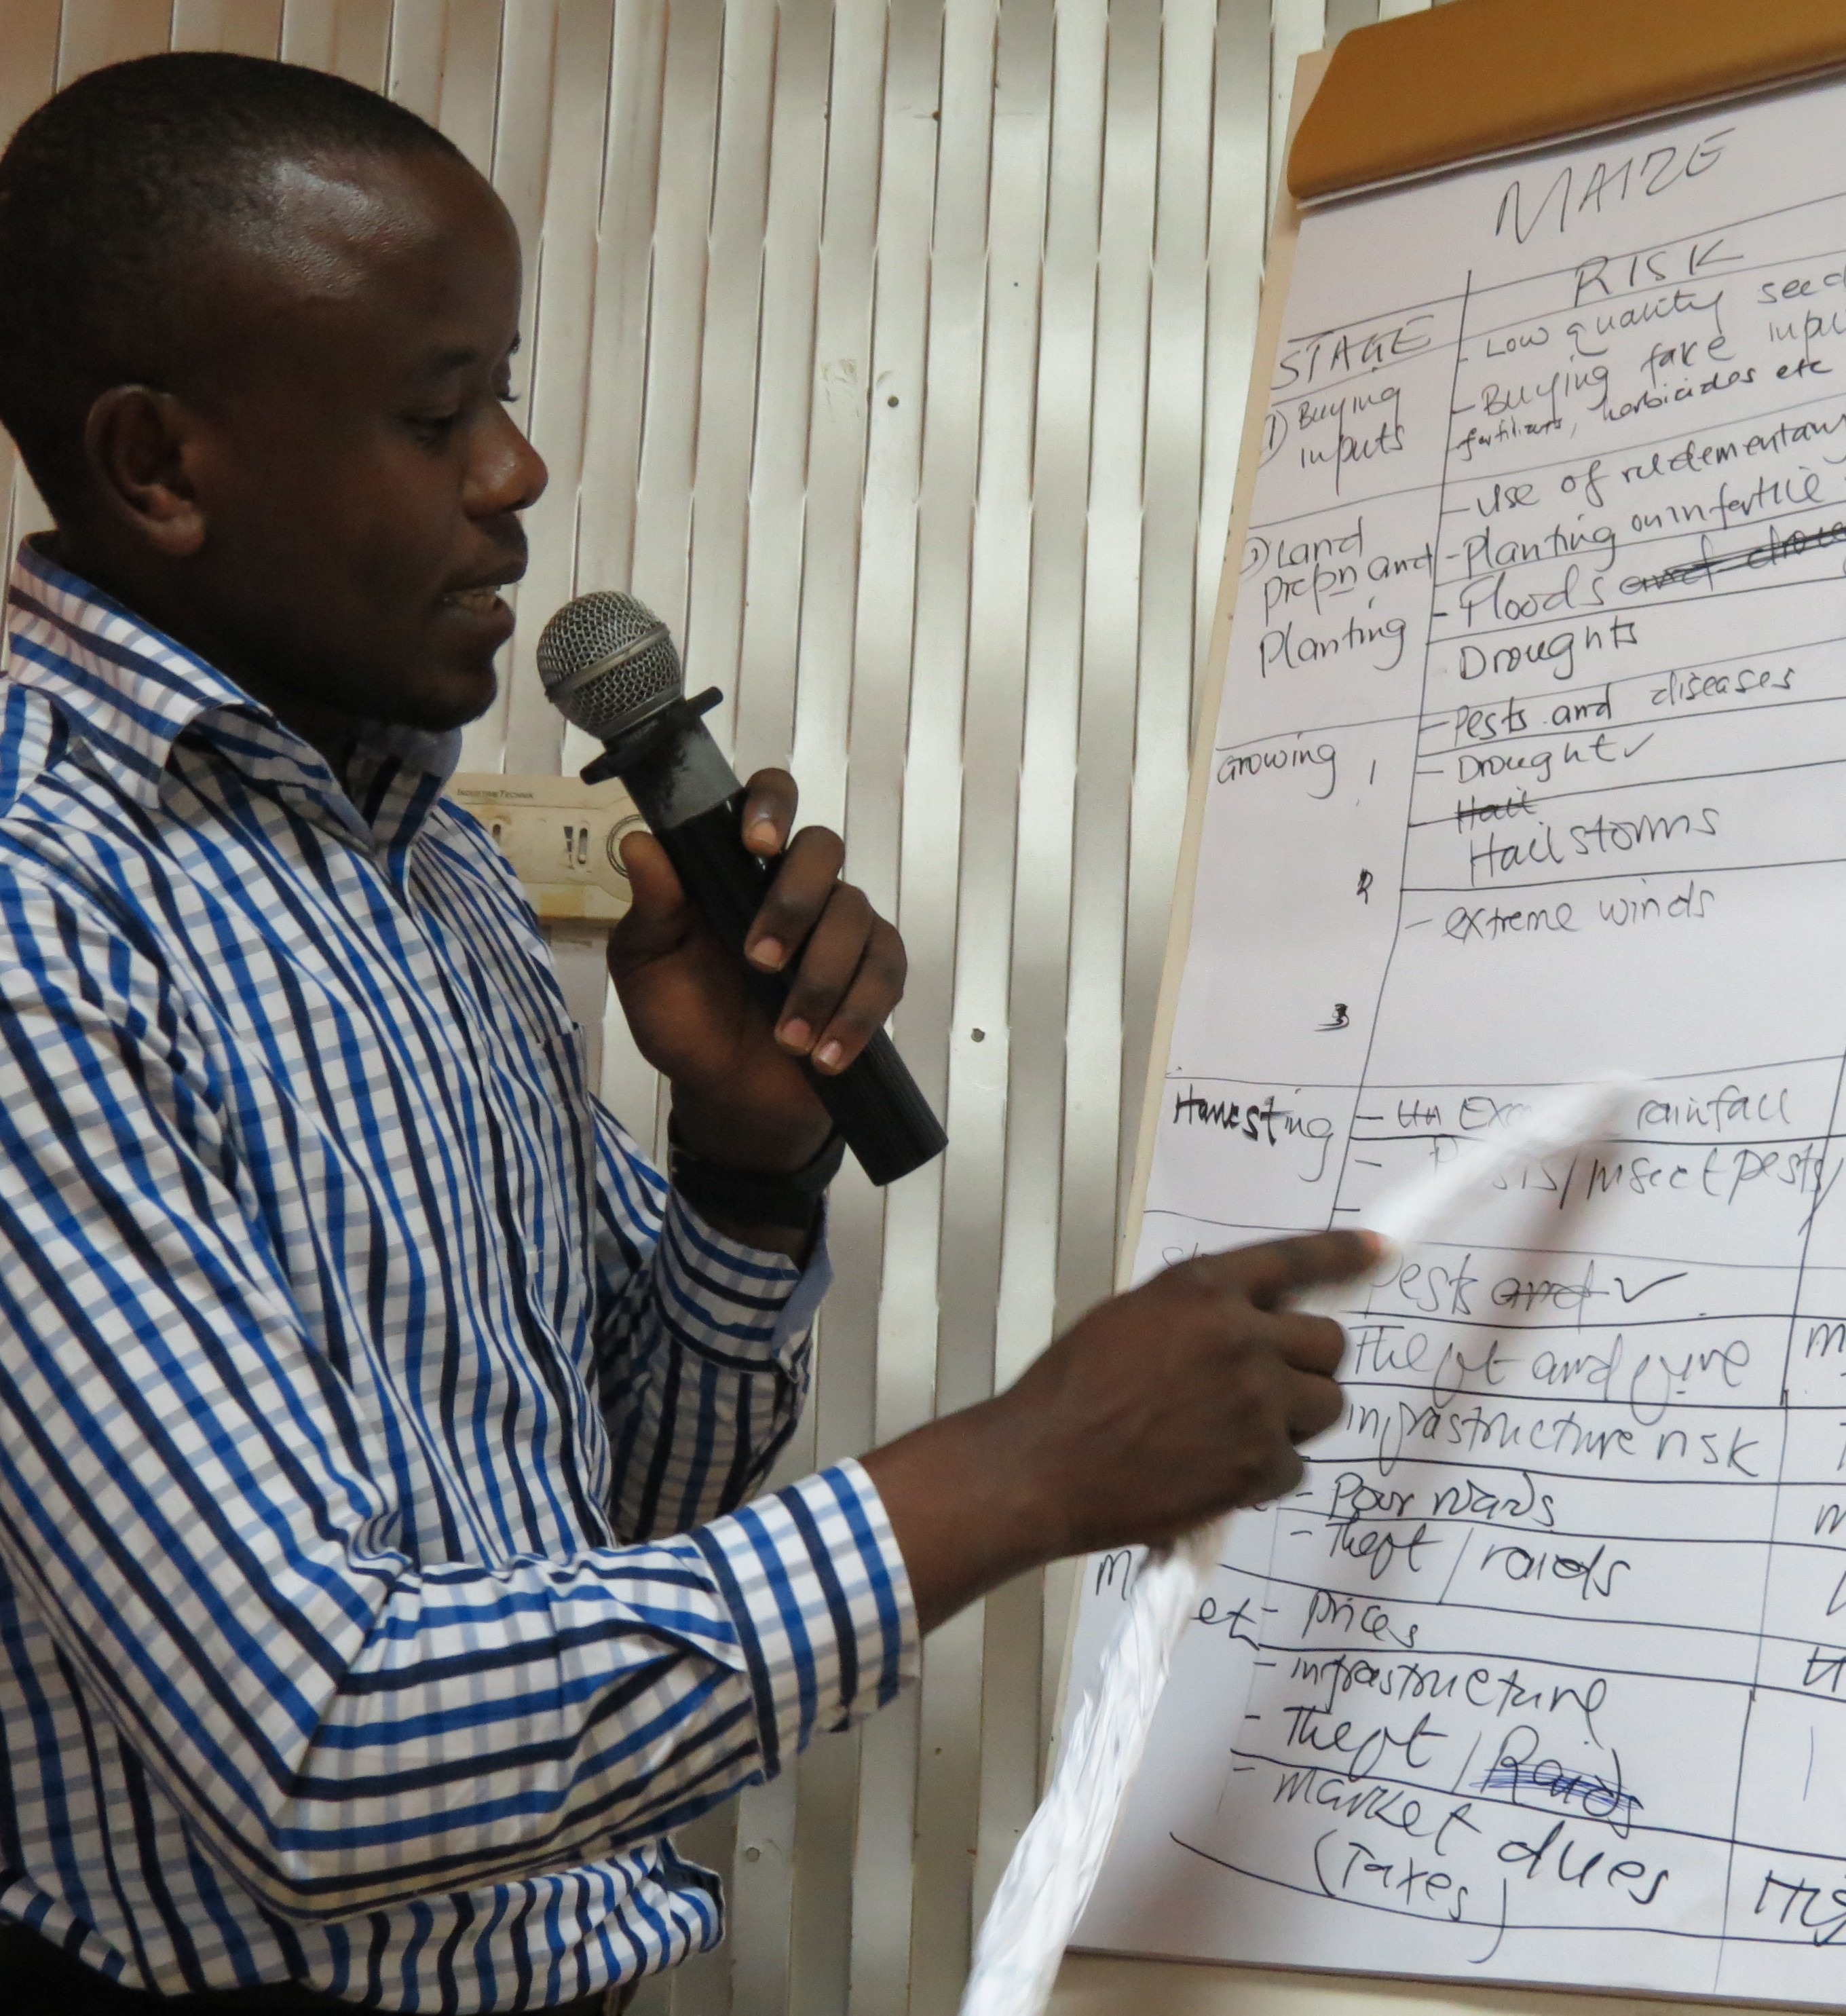 Agricultural Risk Management at the centre of the discussions in Uganda